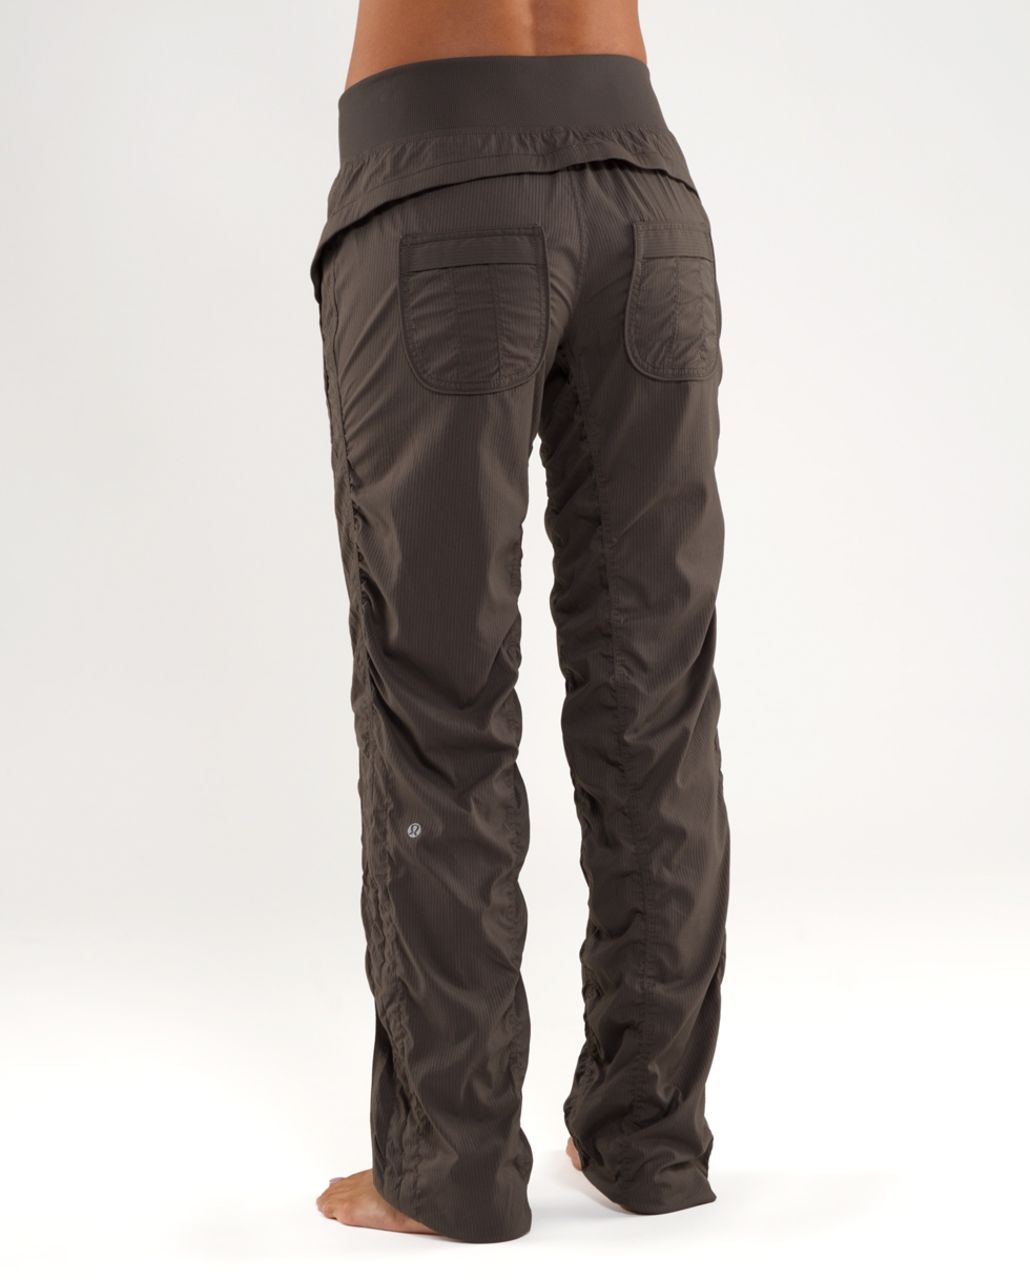 Lululemon Quick Step Pant - Wren